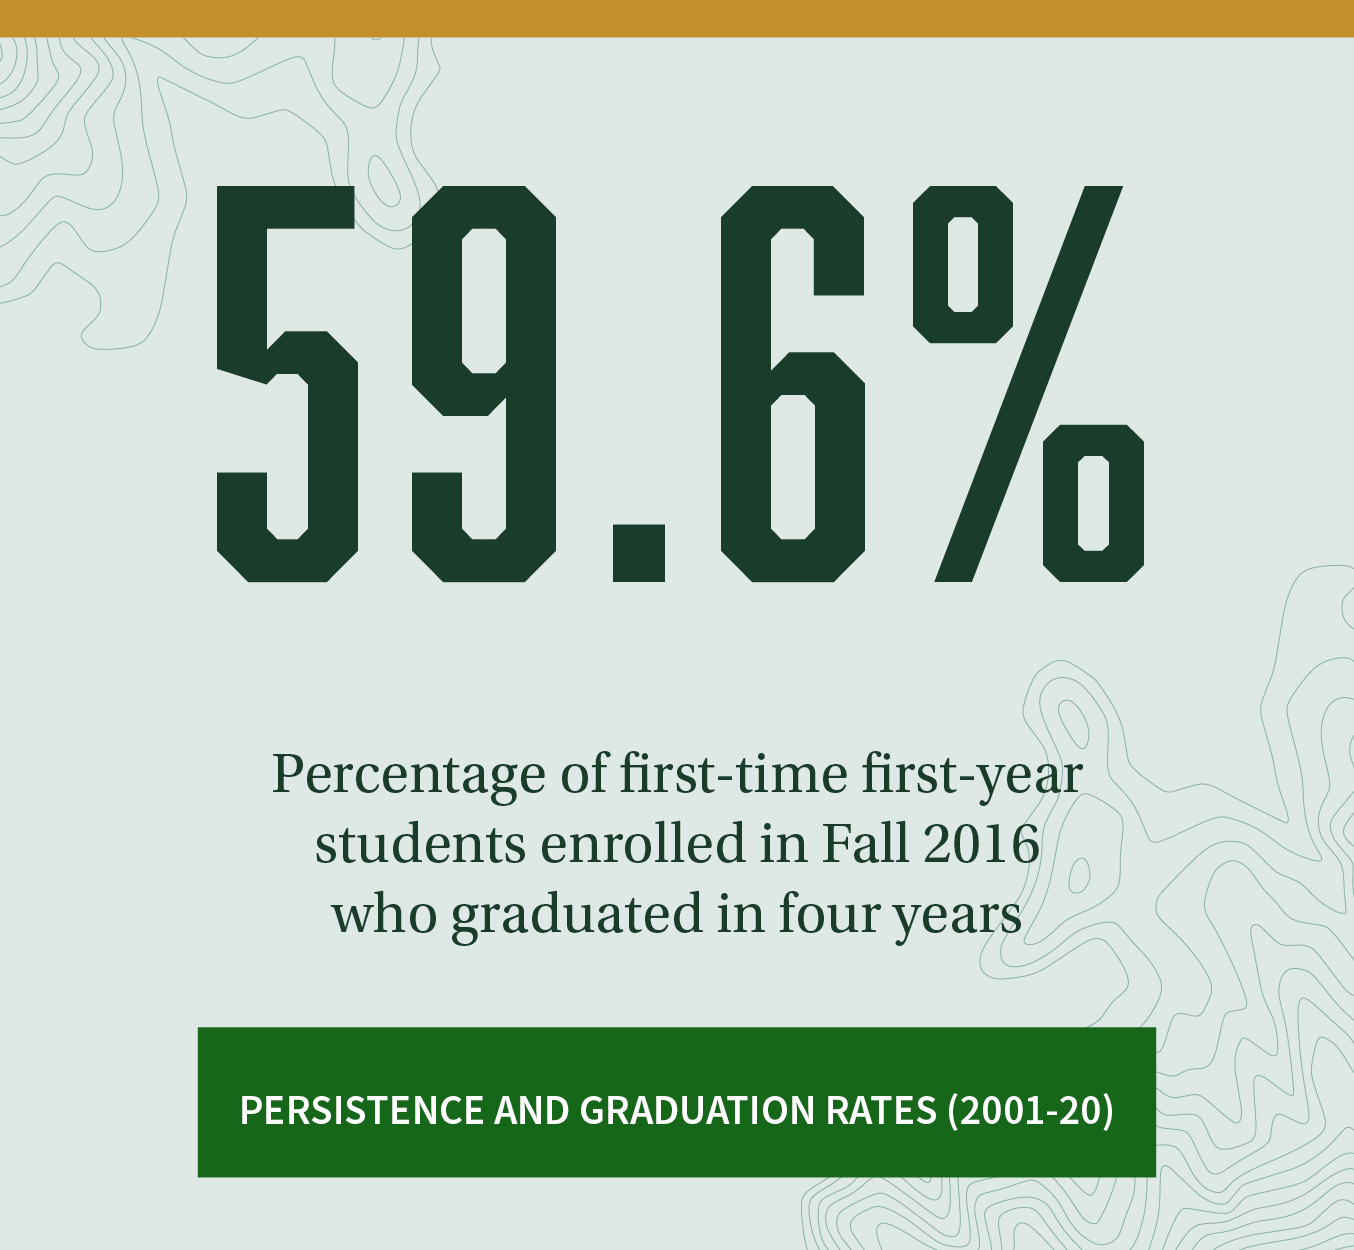 59.6%. Percentage of first-time first-year students from Fall 2016 who graduated in four years. Click to see persistence and graduation rates (2001-20).